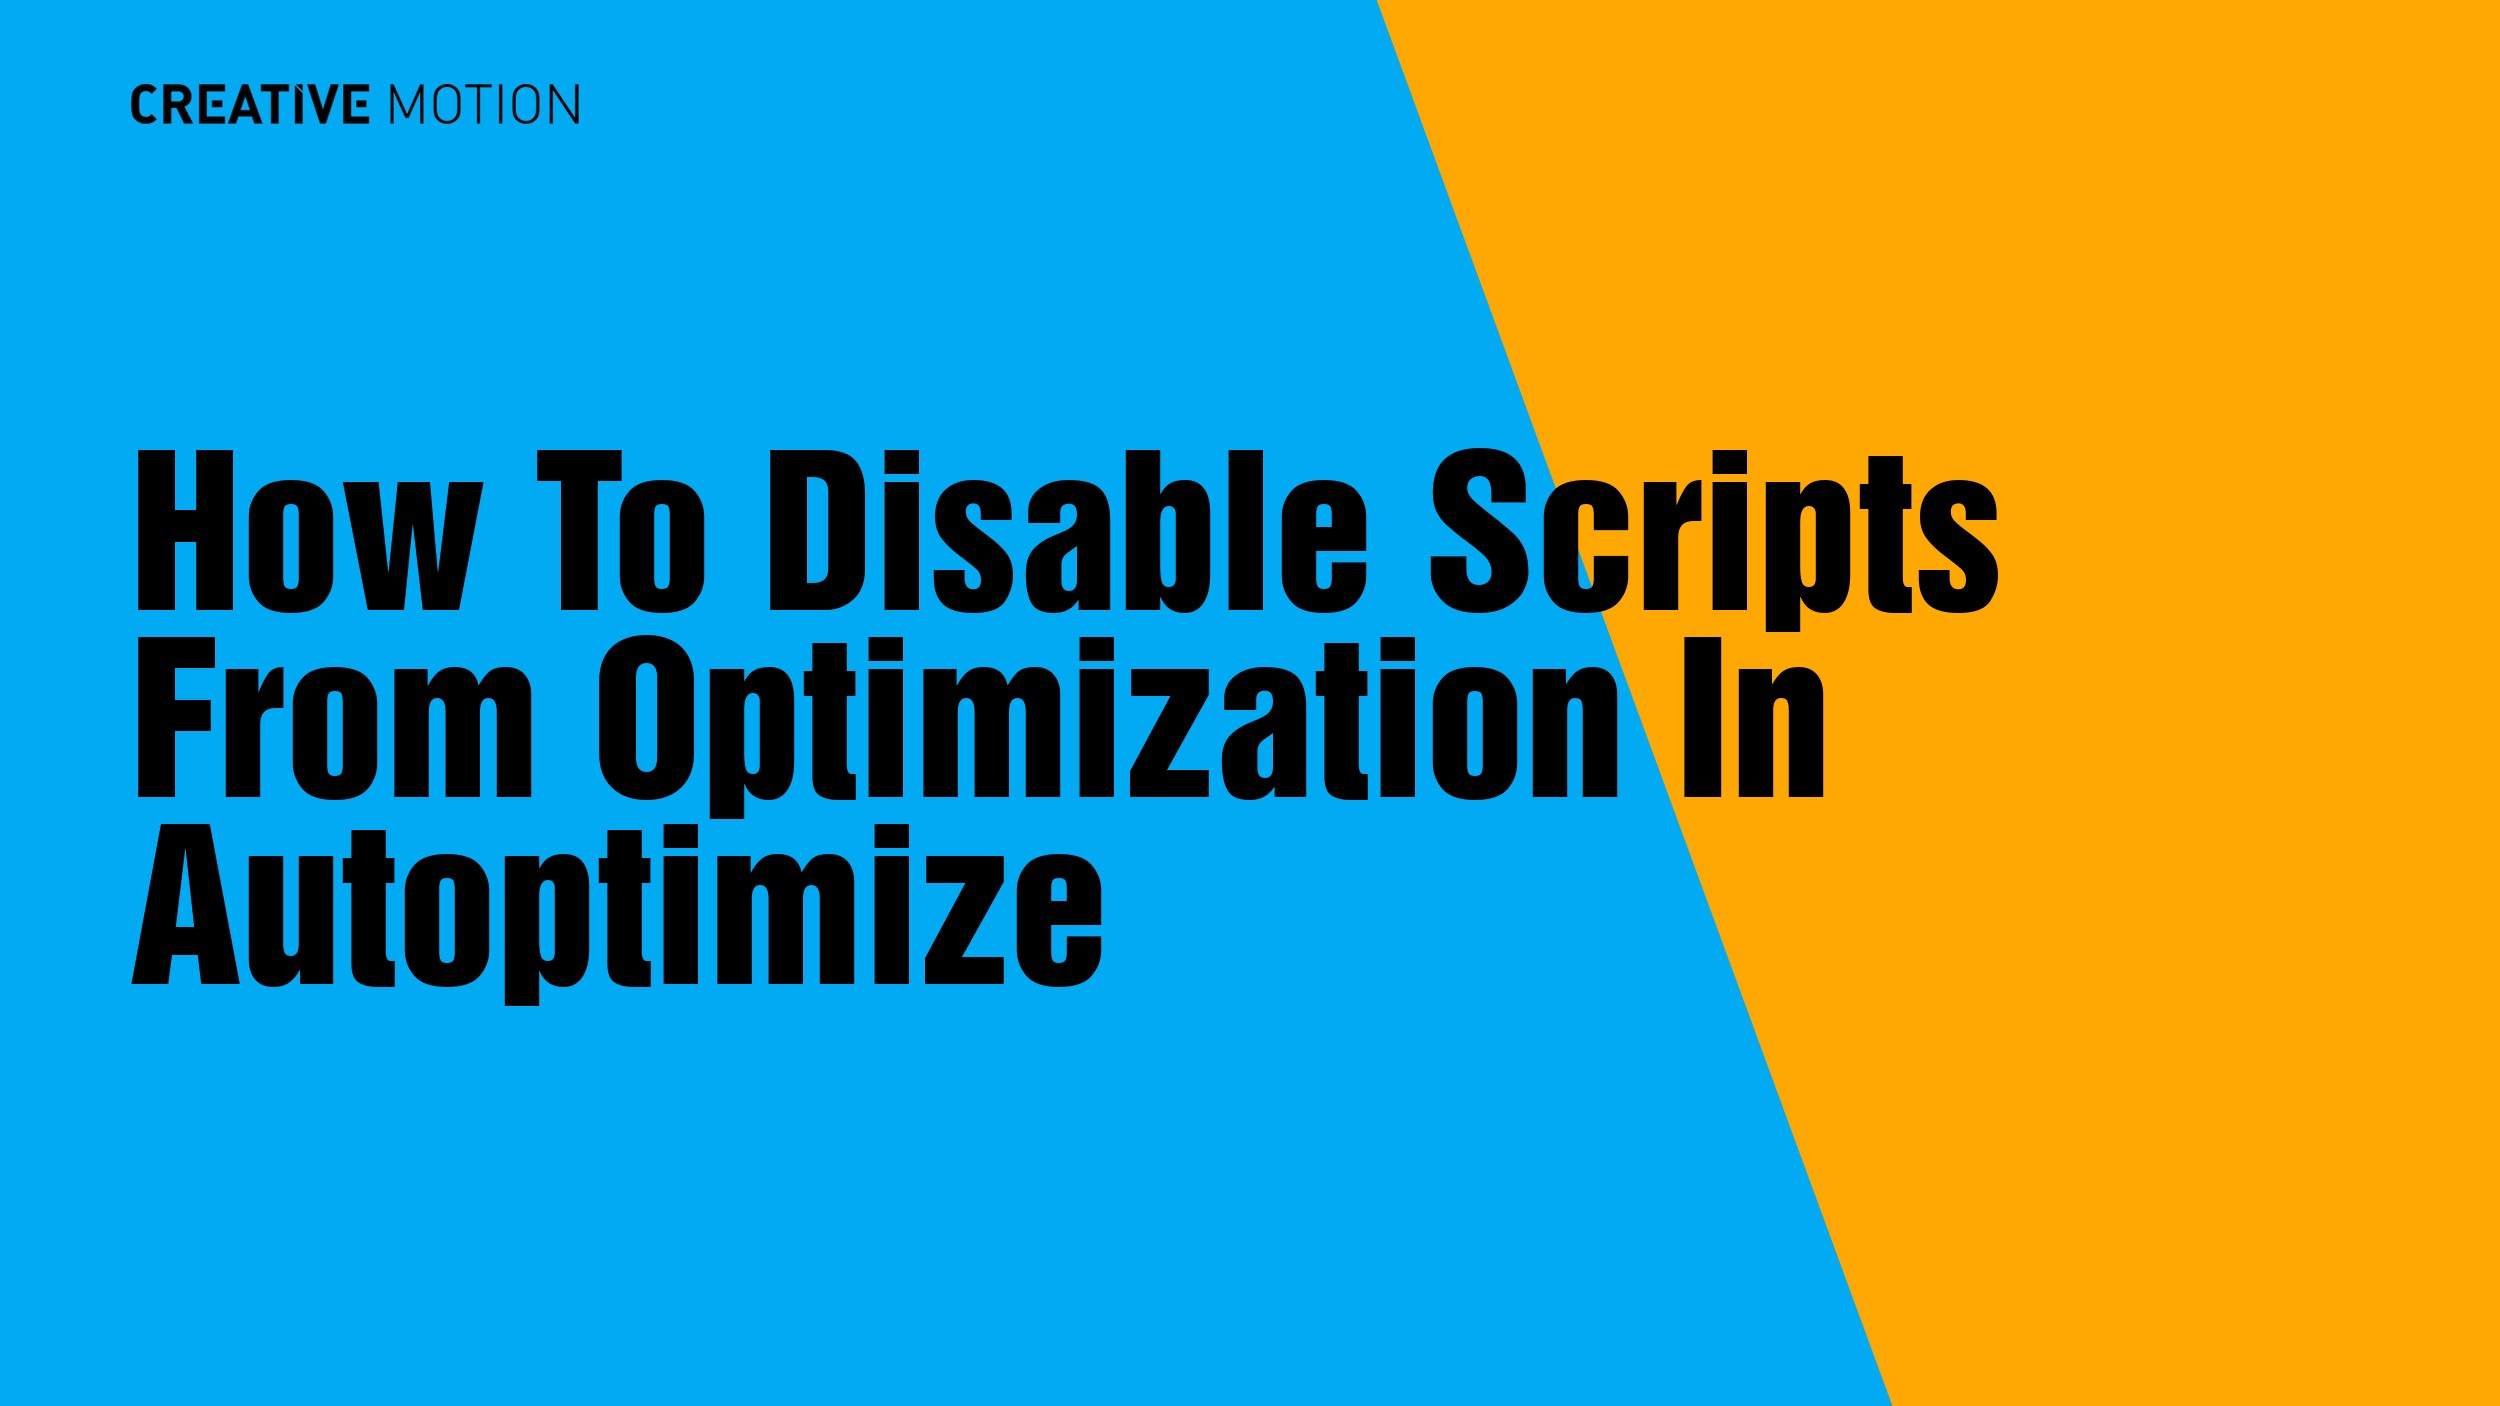 How To Disable Scripts From Optimization In Autoptimize